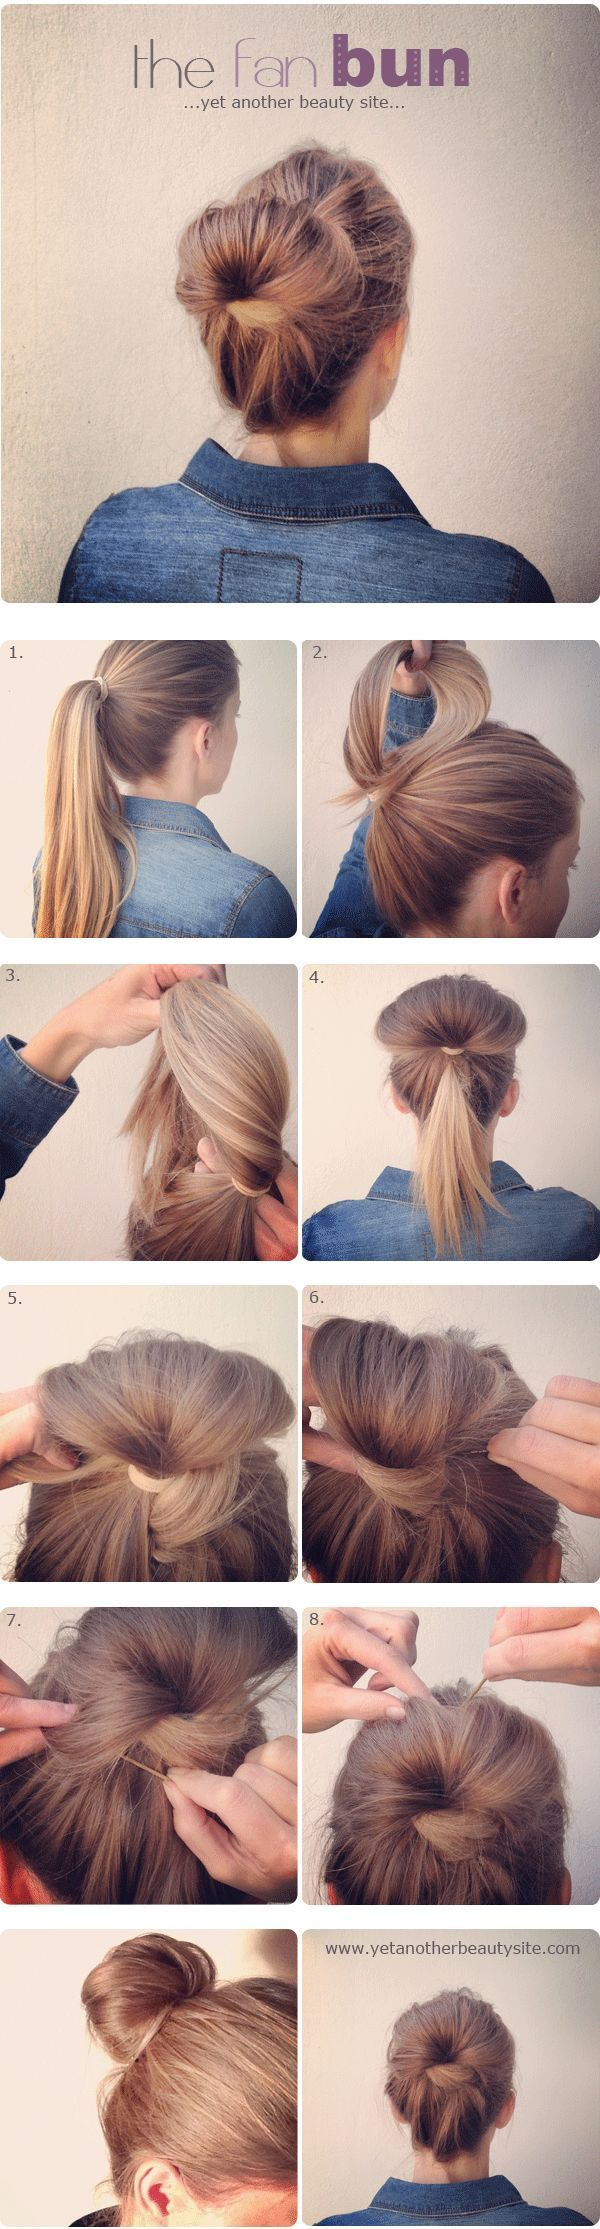 This is by FAR my favorite, quick & easy up-do! Been doing this look for months now, only higher up on my head… looks totally